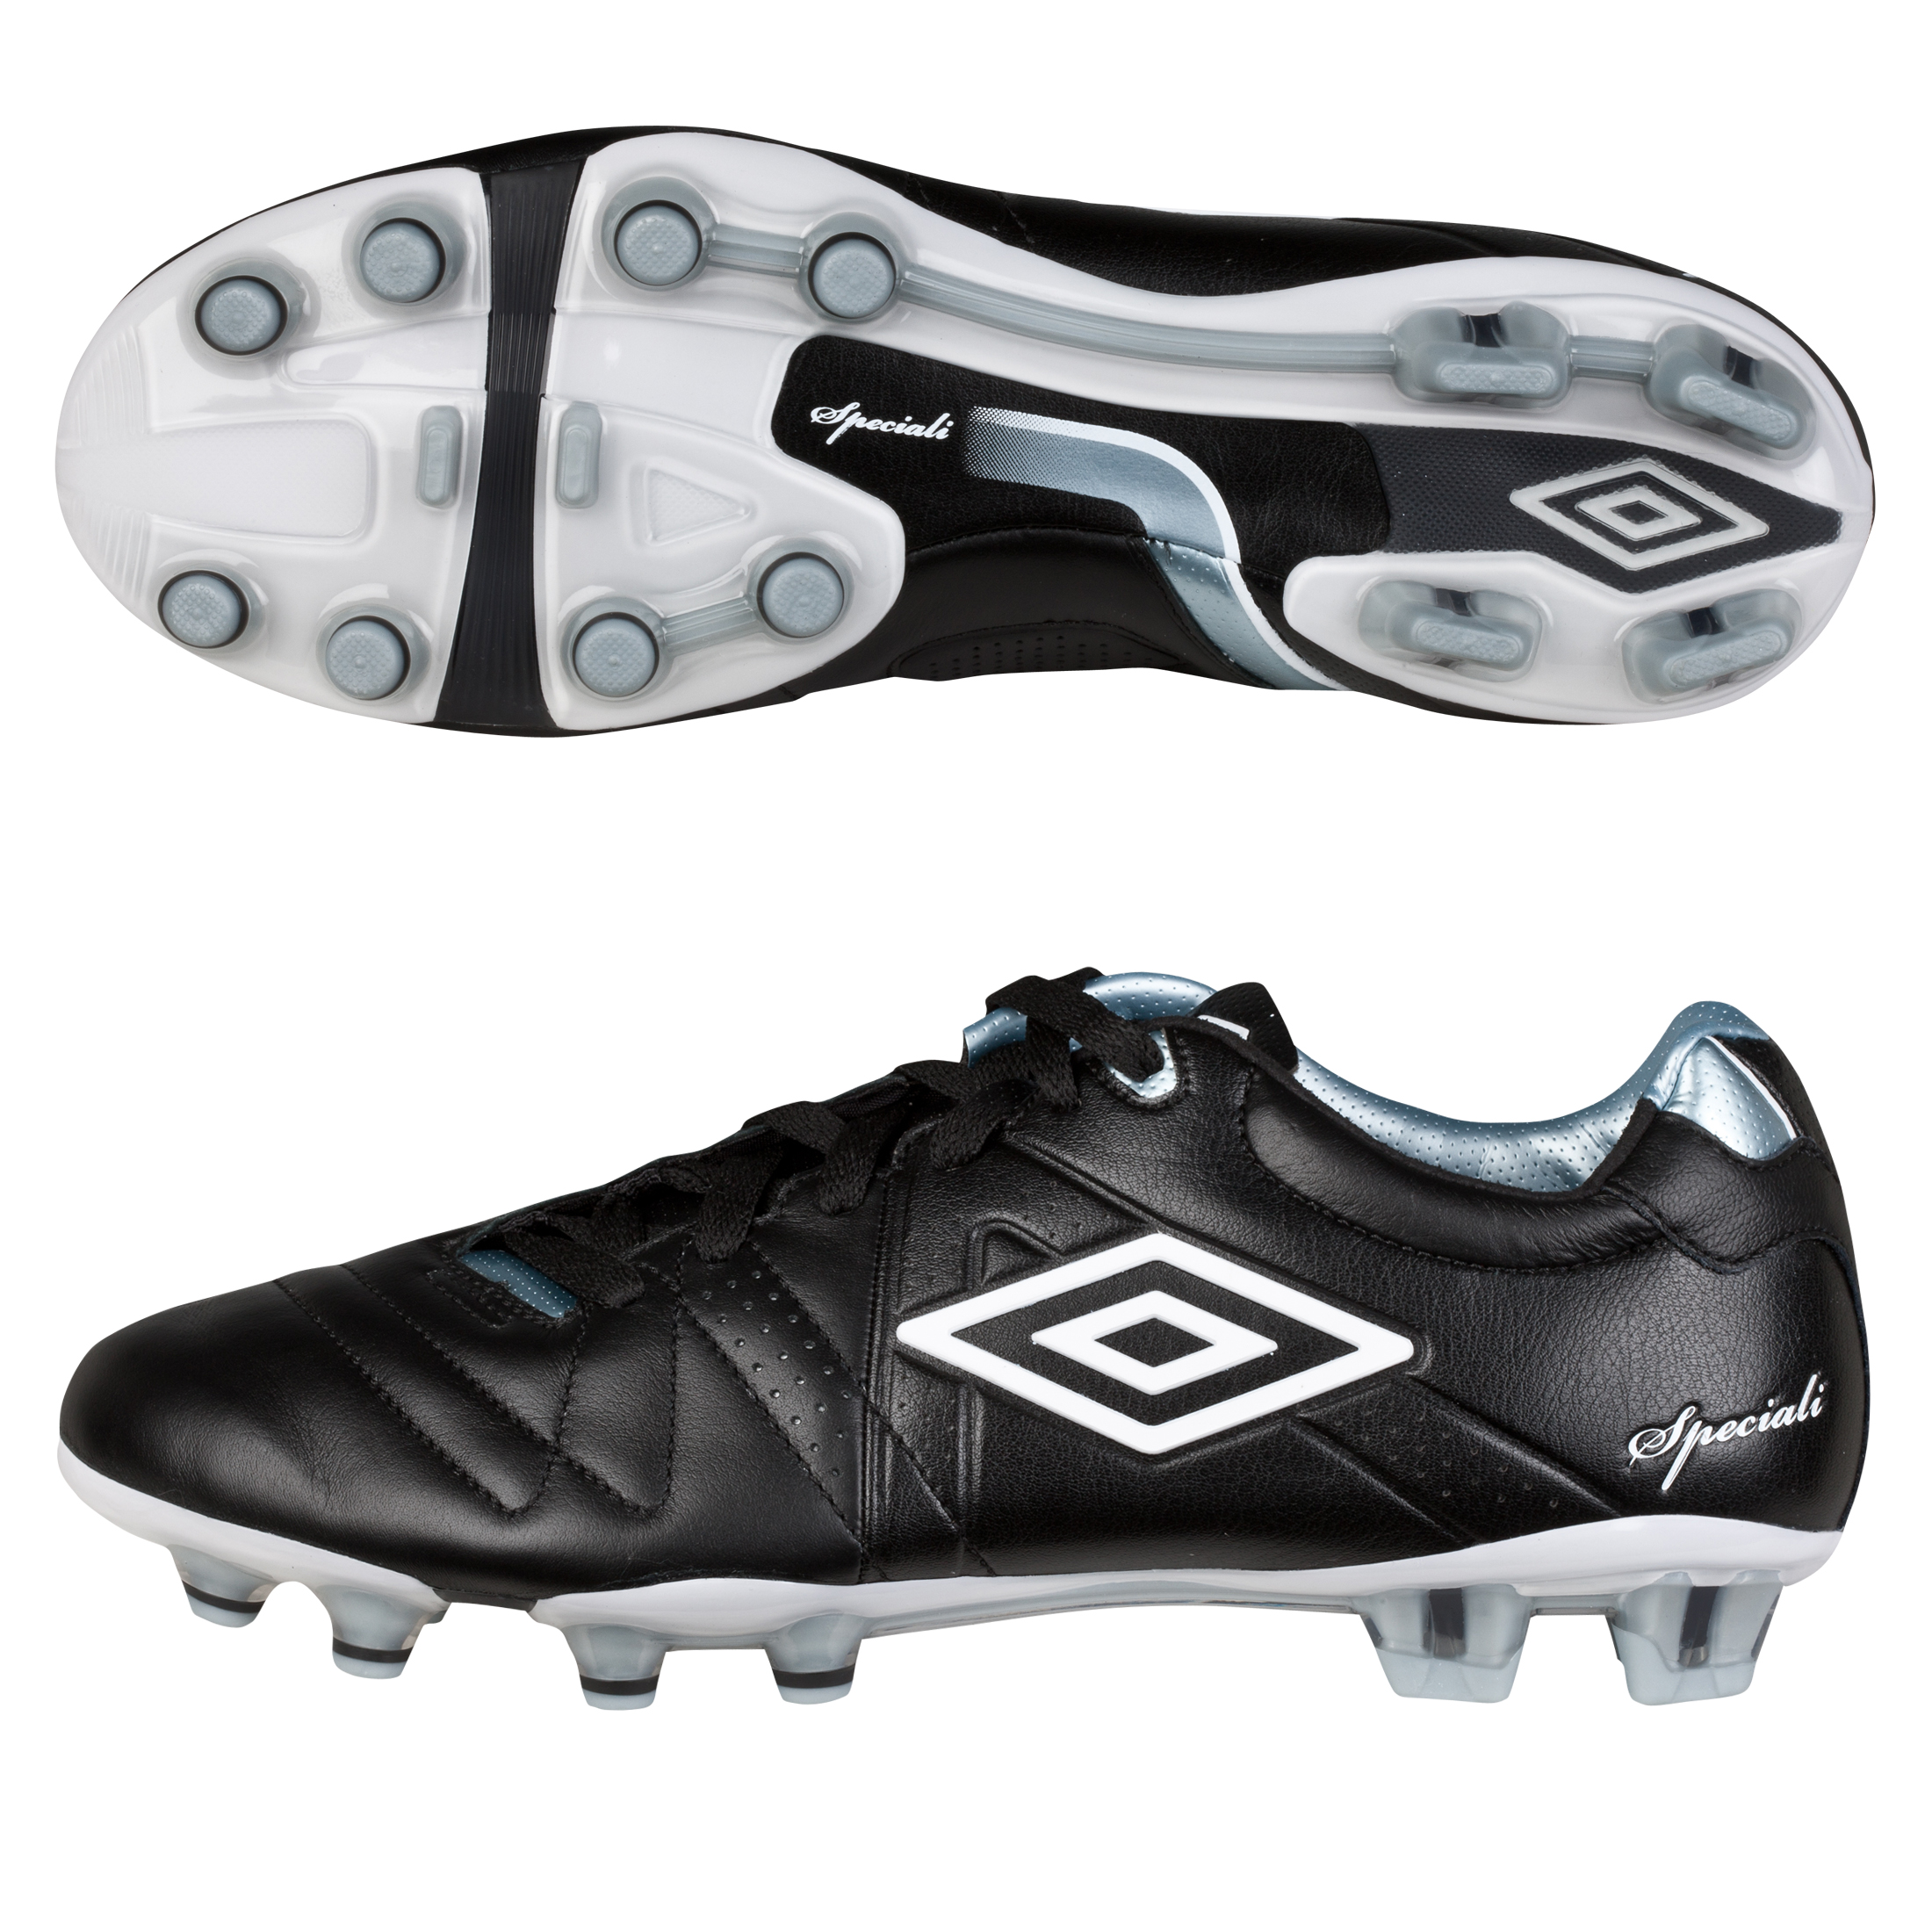 Umbro Speciali 3 Pro Hard Ground Football Boots - Black/White/Chrome